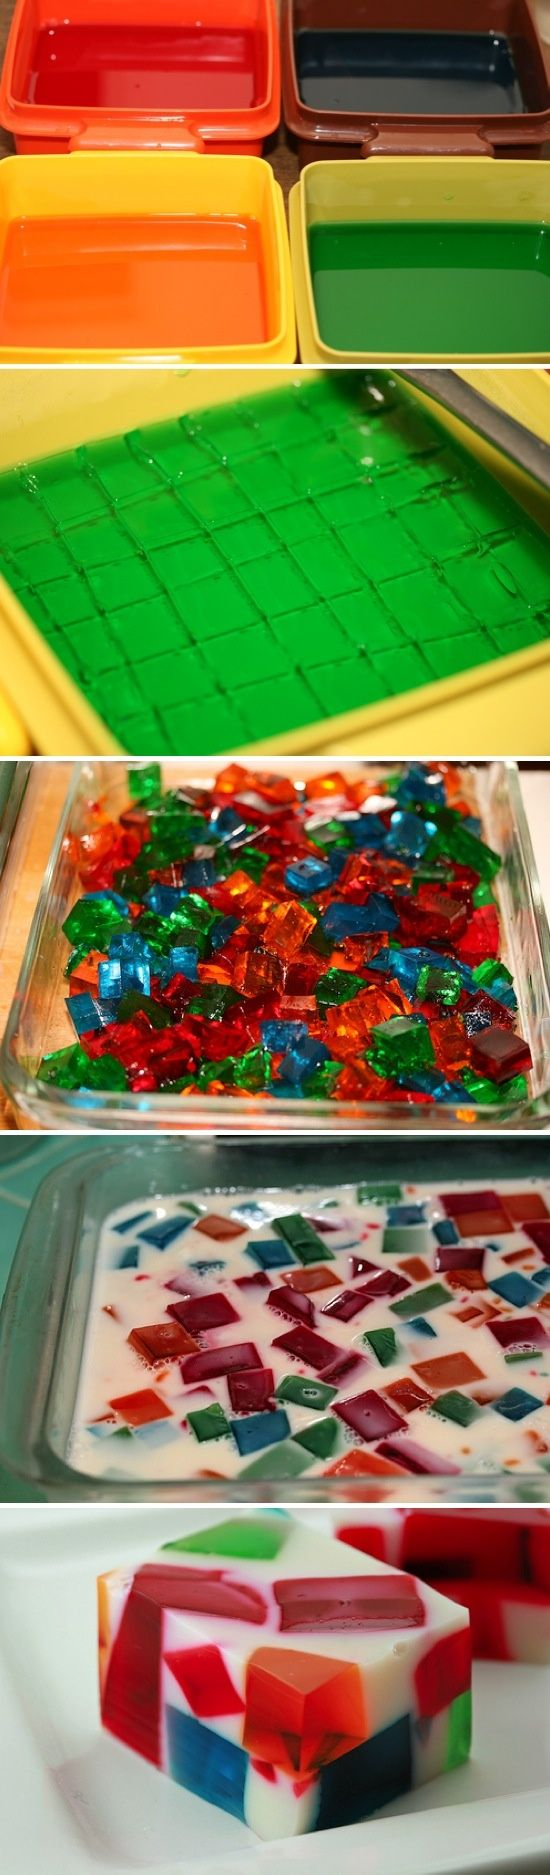 Broken Glass Jello-This is the coolest Jello idea! Although it takes a bit of planning ahead for the Jello to cool, it looks like it would be a lot of fun. Make it into a holiday jello by using festive colors; red, white, and blue for The 4th of July, red and green for Christmas, pastels for Easter, etc